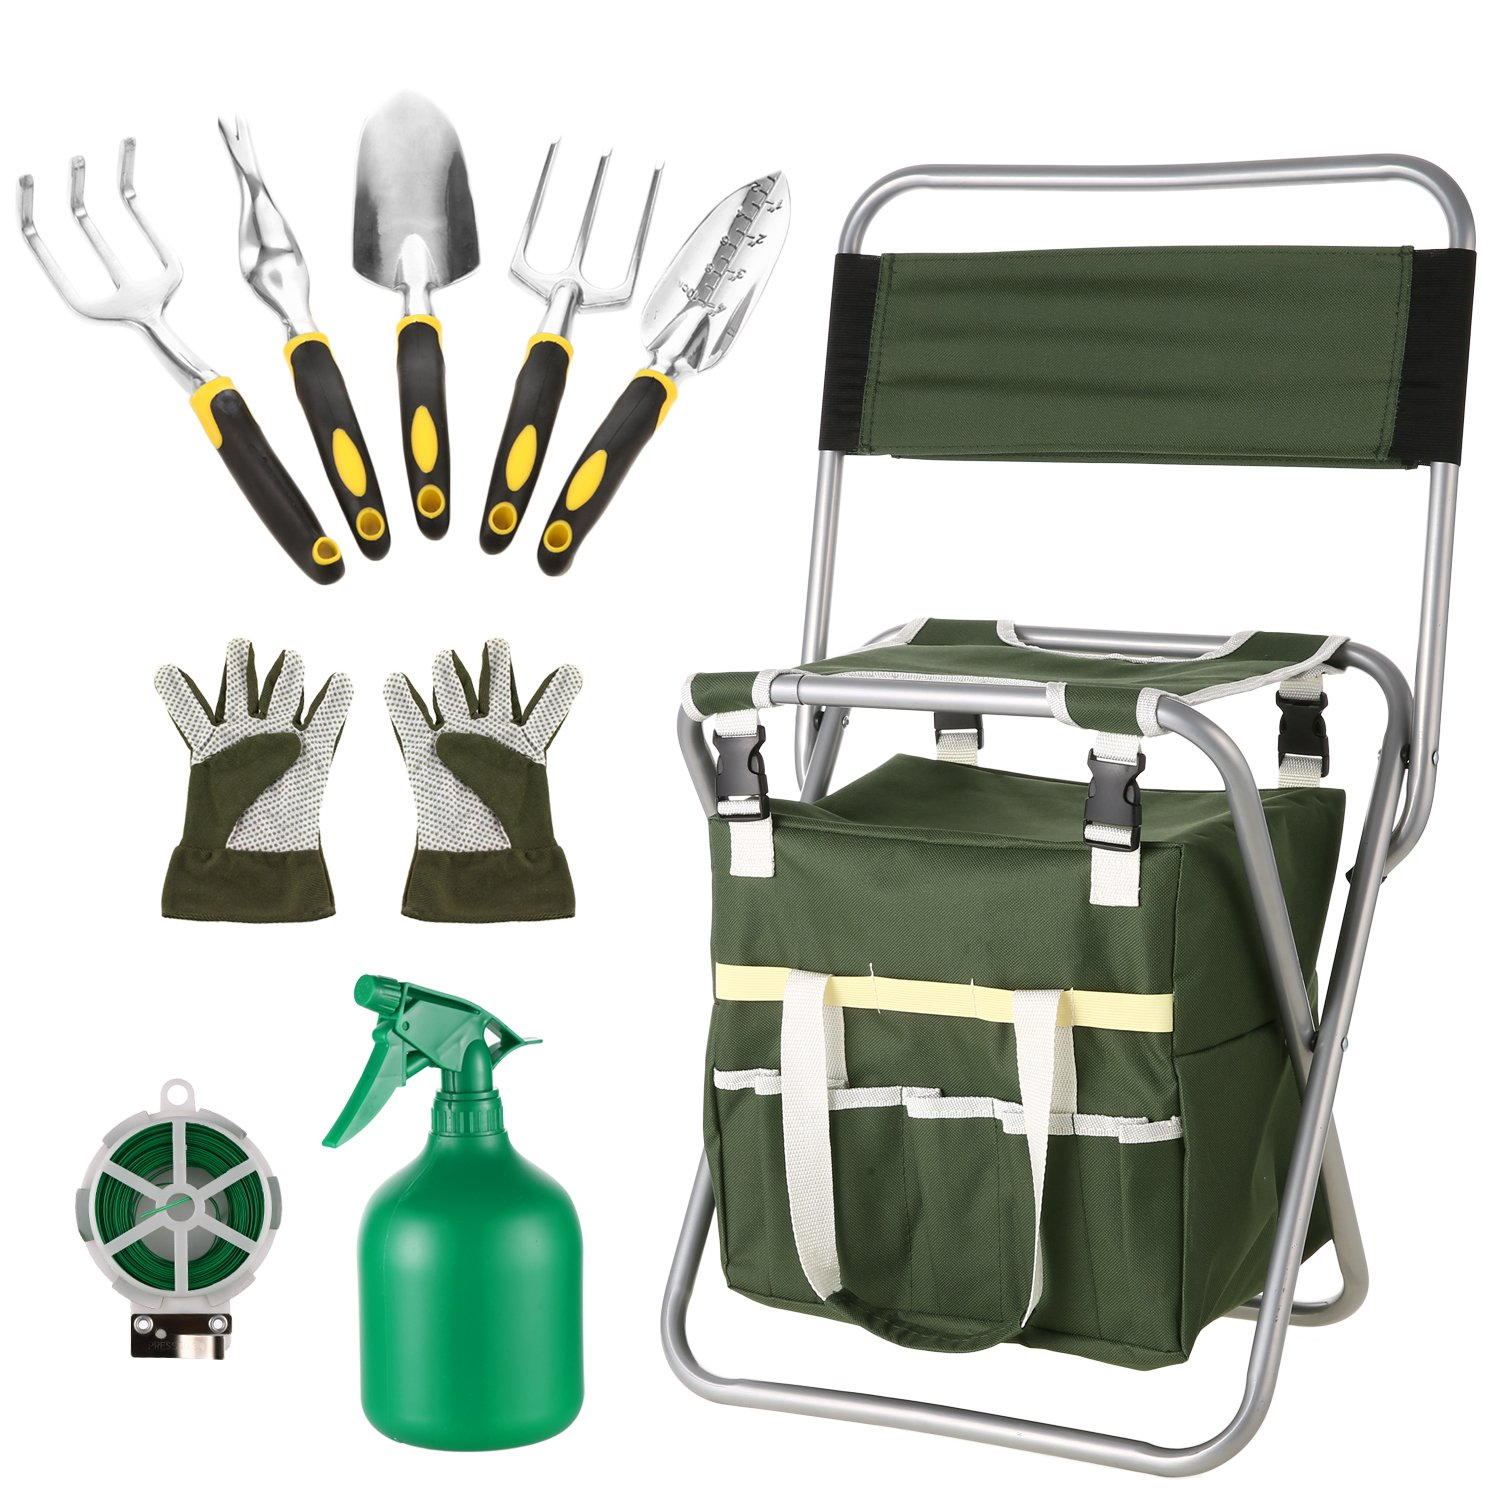 22 Top Gardening Tool Set for Mom: 17th and 21st Tool Is Just Too Good!